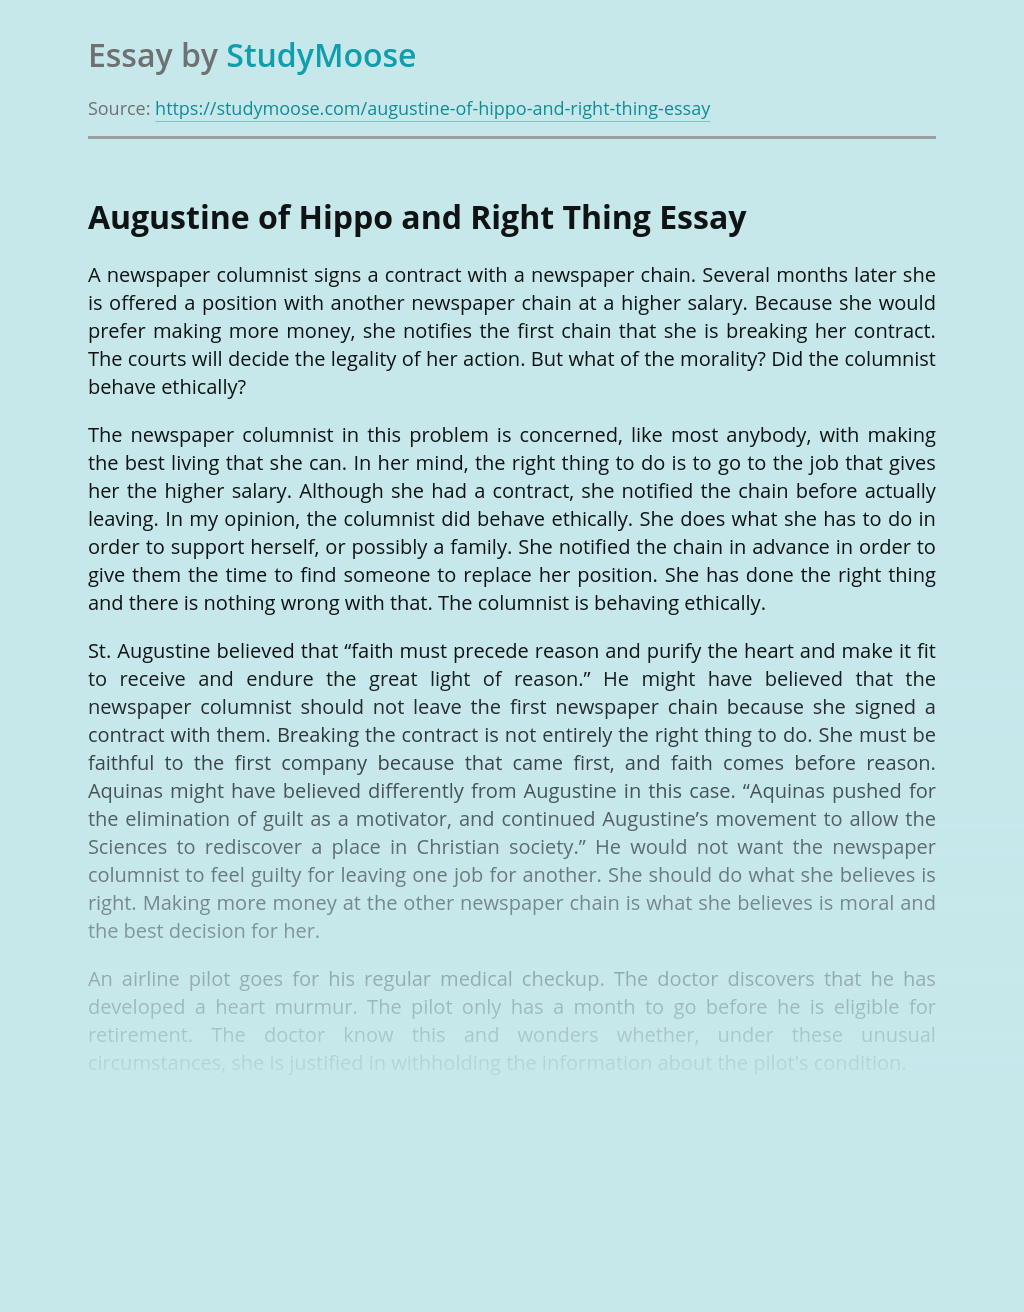 Augustine of Hippo and The Moral Thing